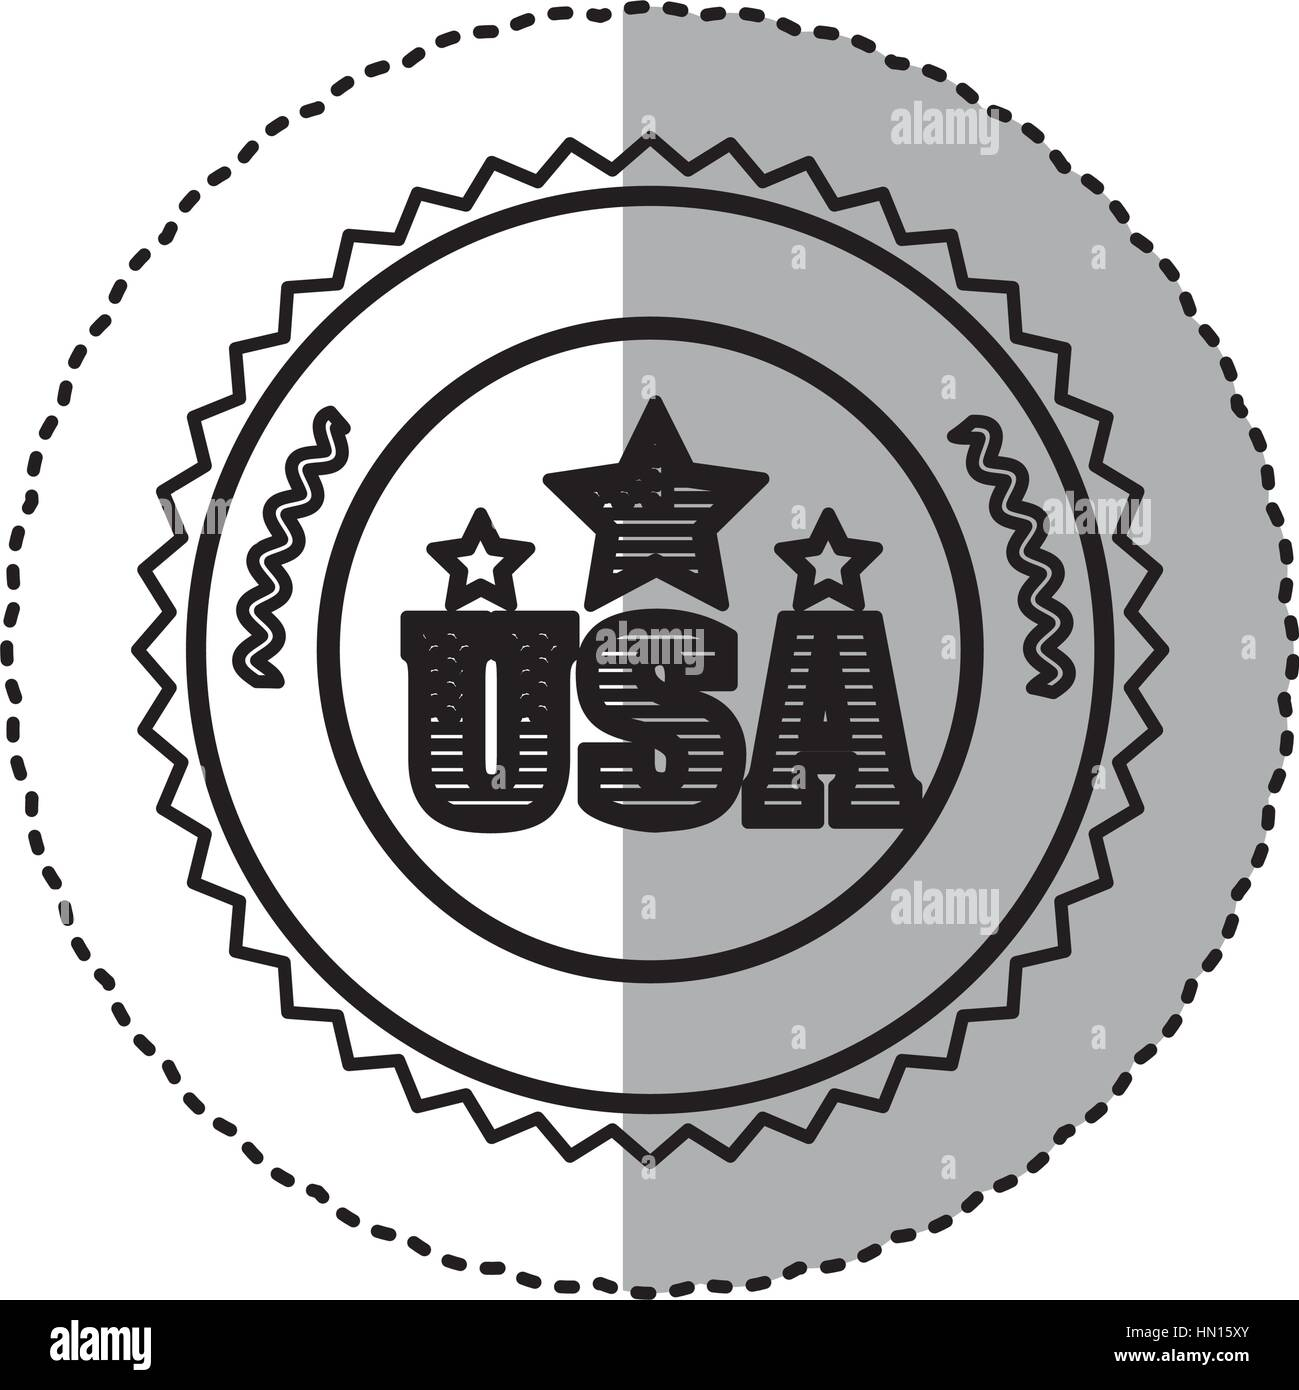 monochrome silhouette sticker with letters U S A and star in round frame - Stock Vector